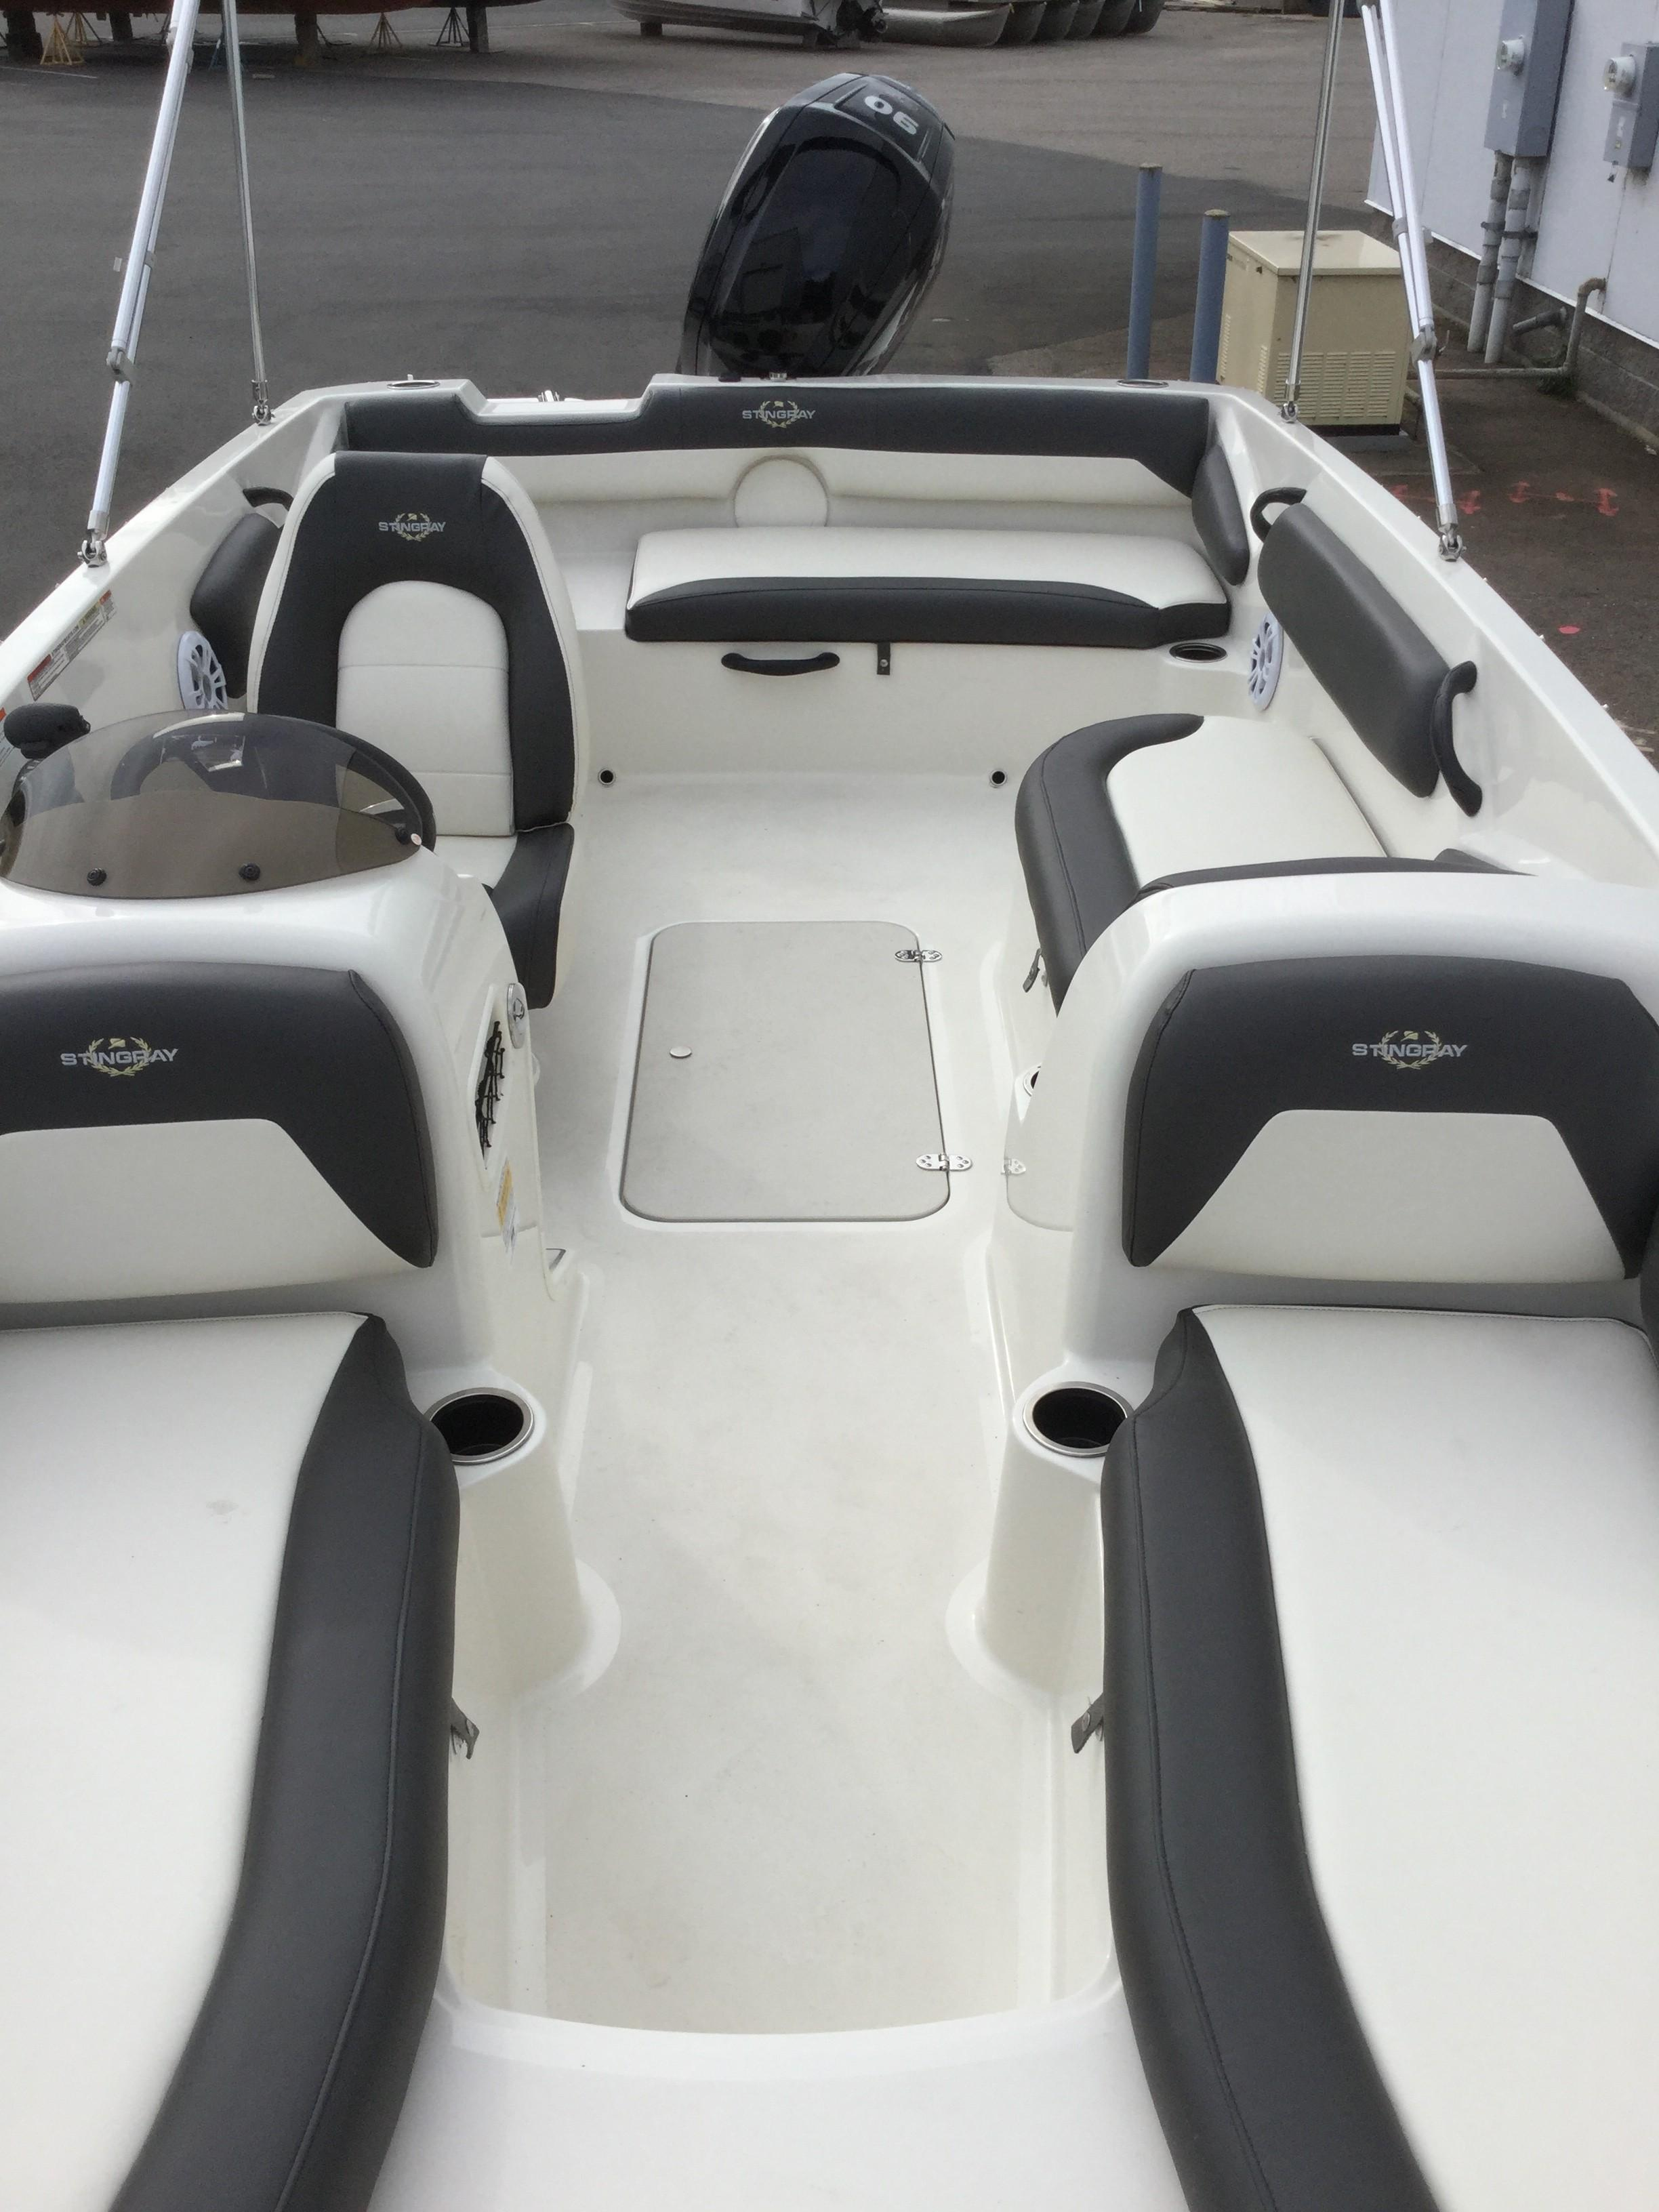 2019 Stingray boat for sale, model of the boat is 182 SC & Image # 4 of 7